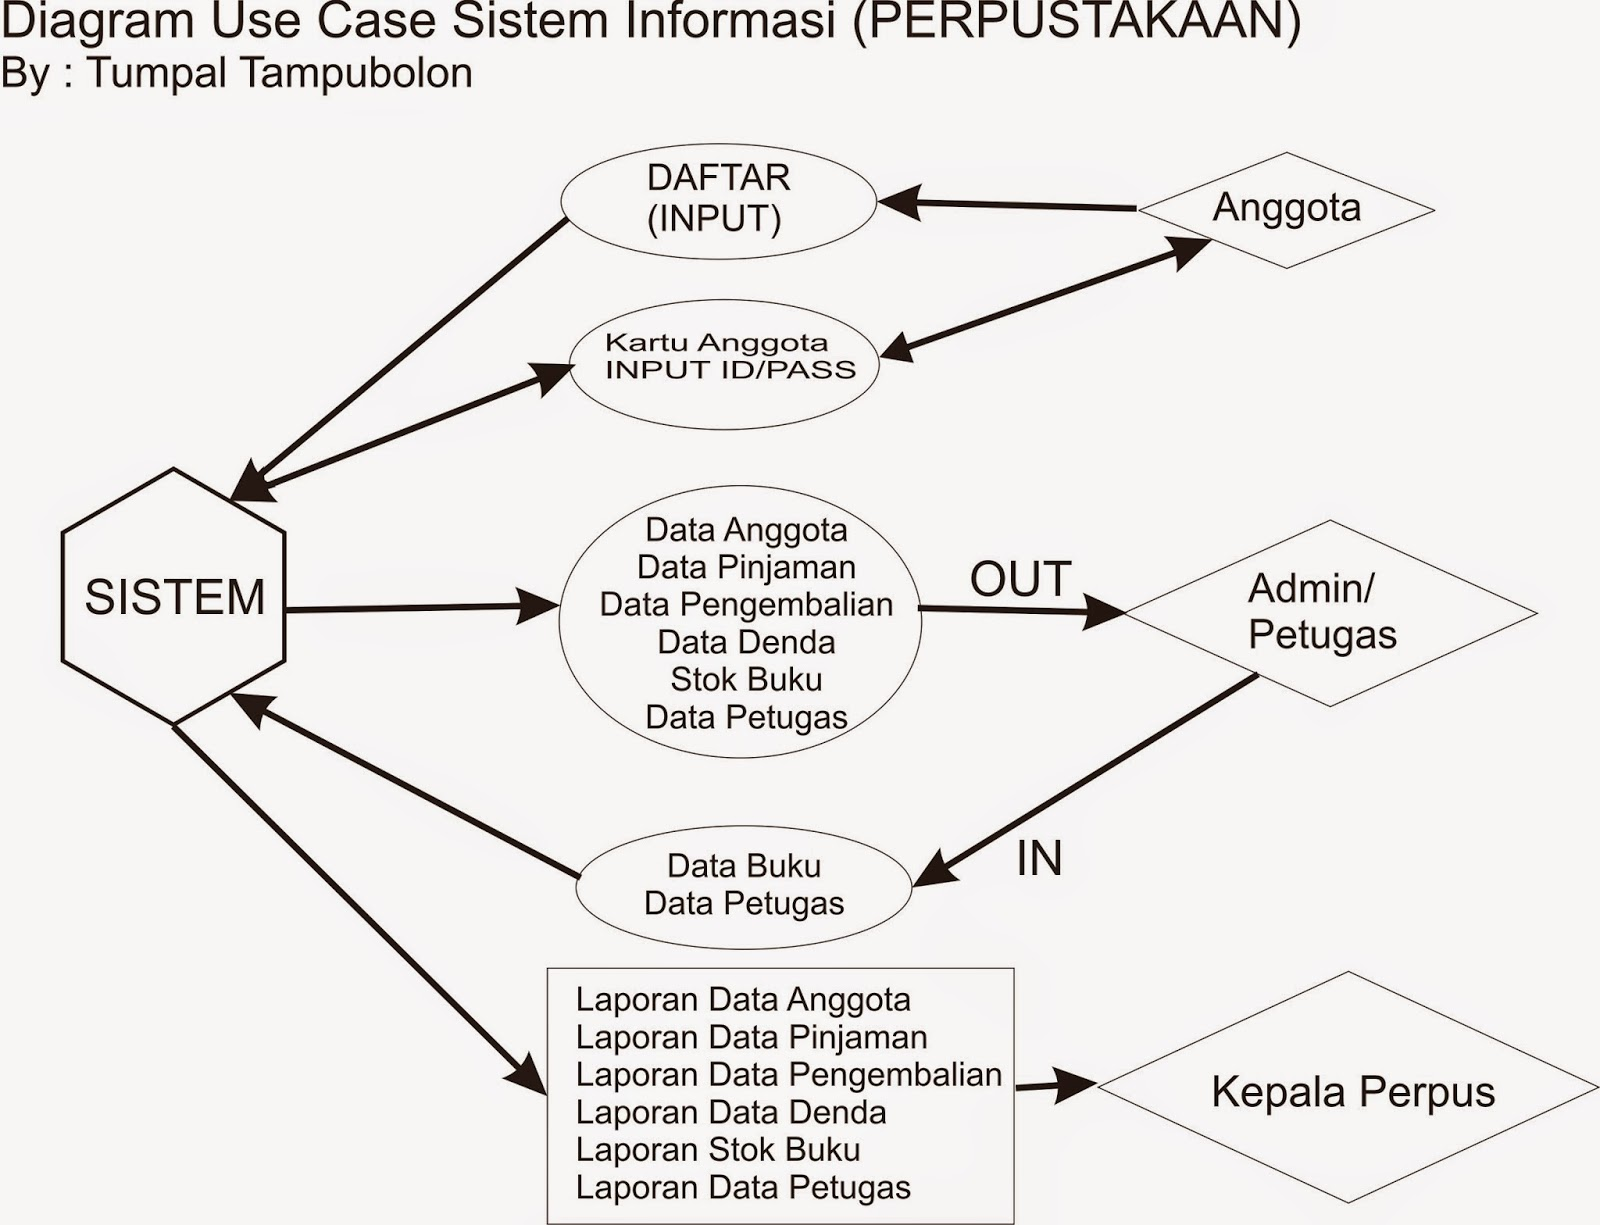 Use Case Diagram Perpustakaan Lengkap